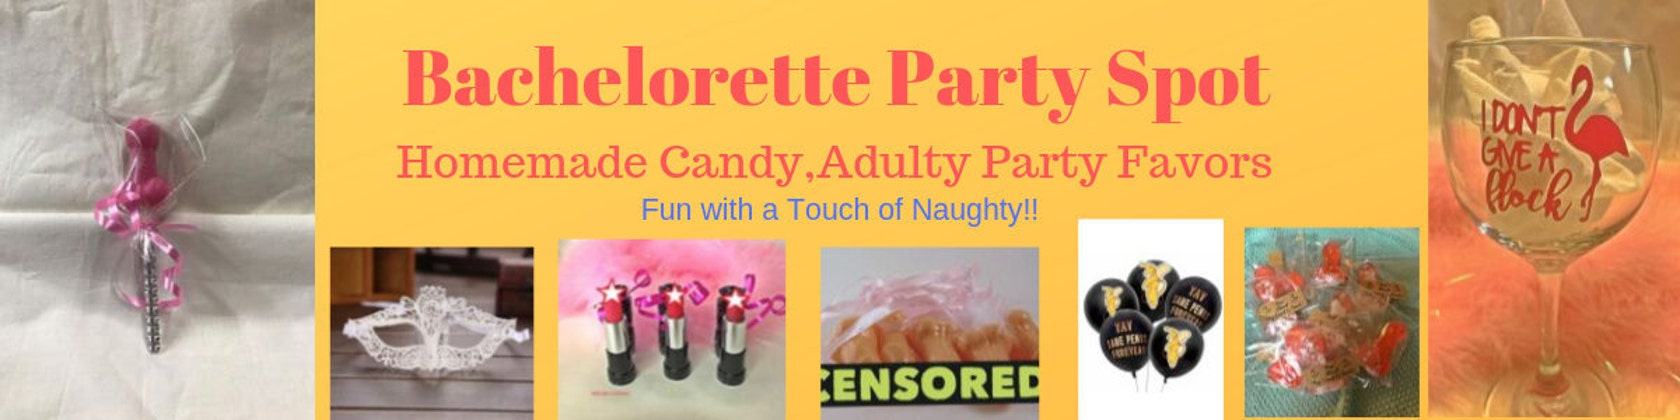 Bachelorette Party Favors Multi Colour Pecker Candy Sprinkles